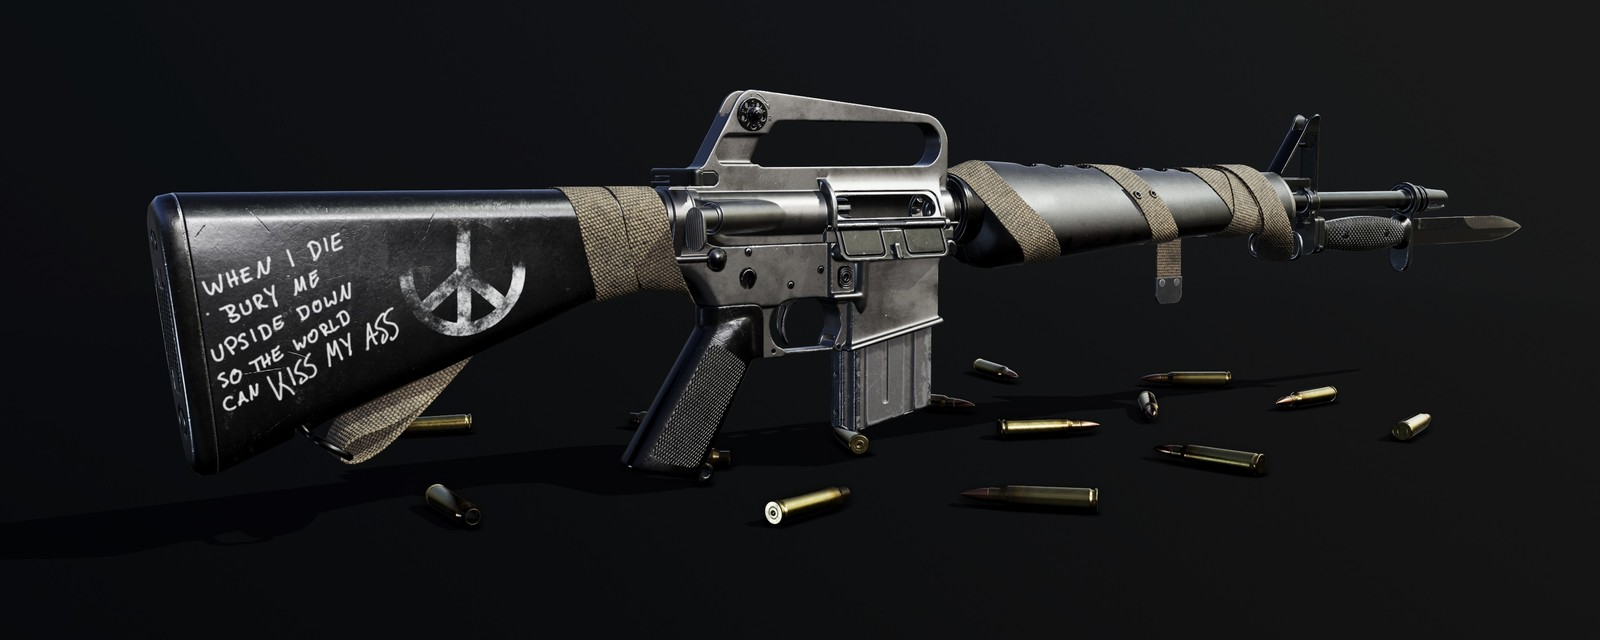 M16A1 with Bayonet and wrapped Sling